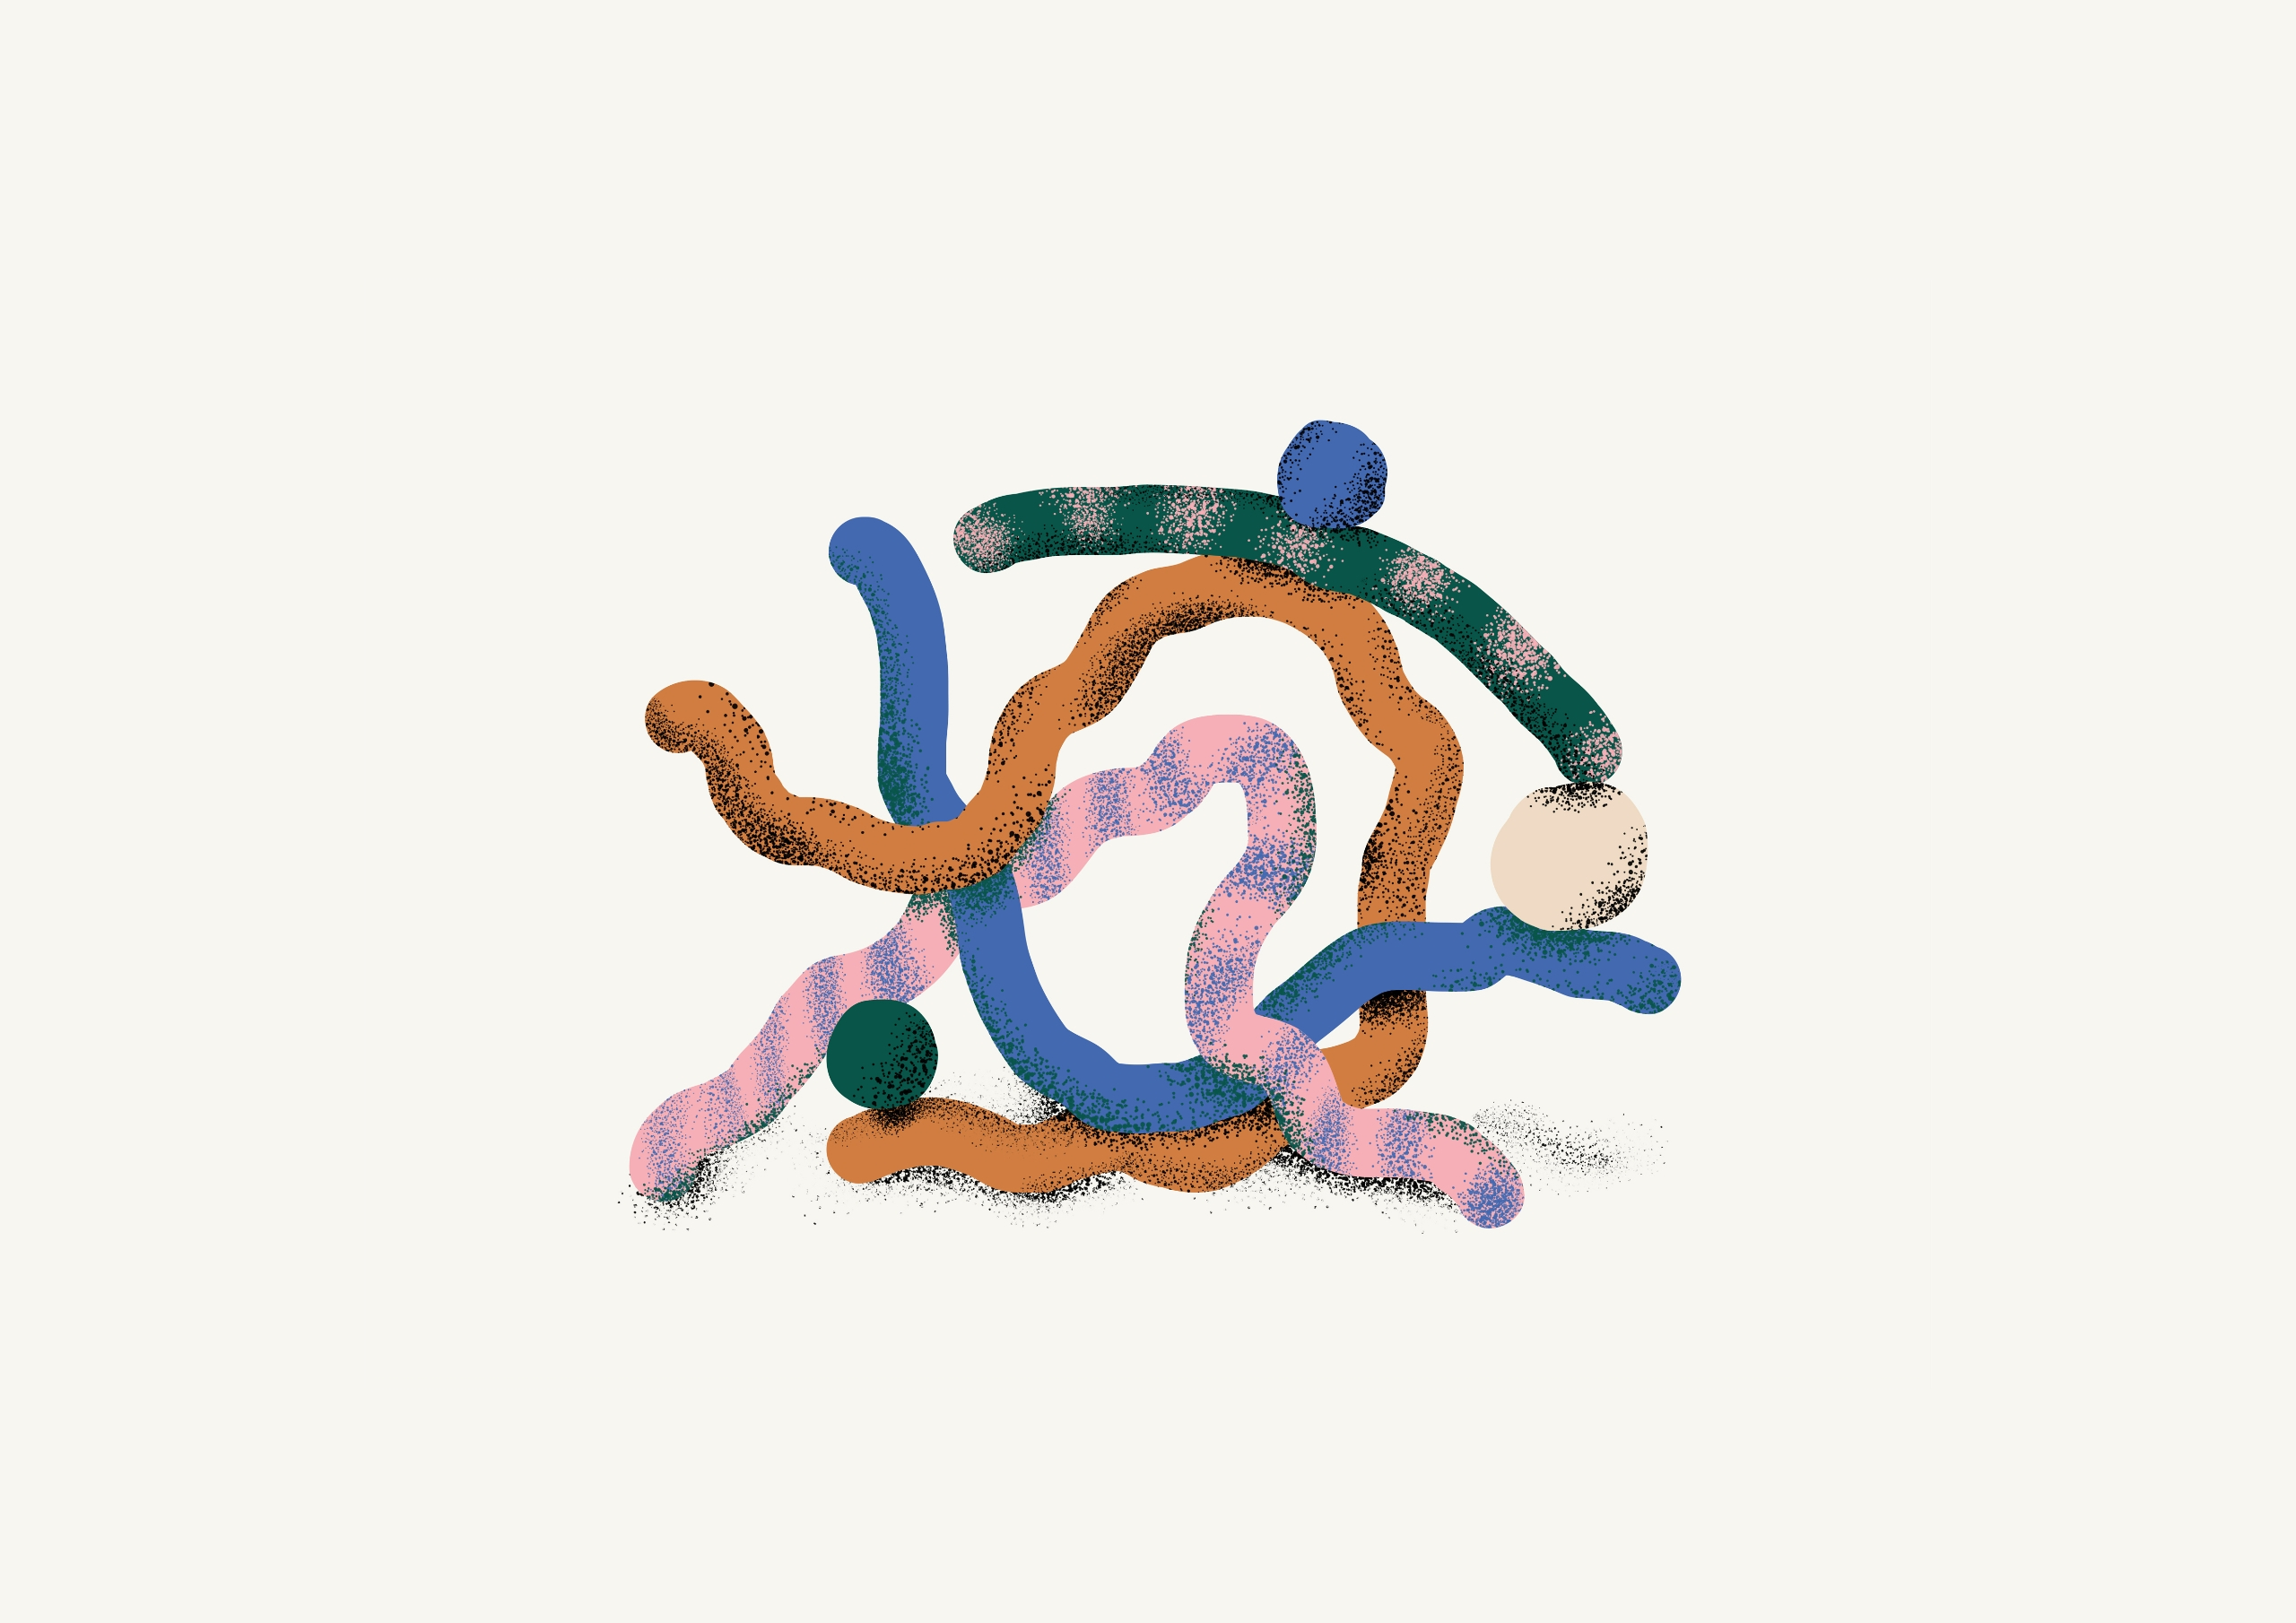 Forms worms - ilustration, shapes - juanbar | ello